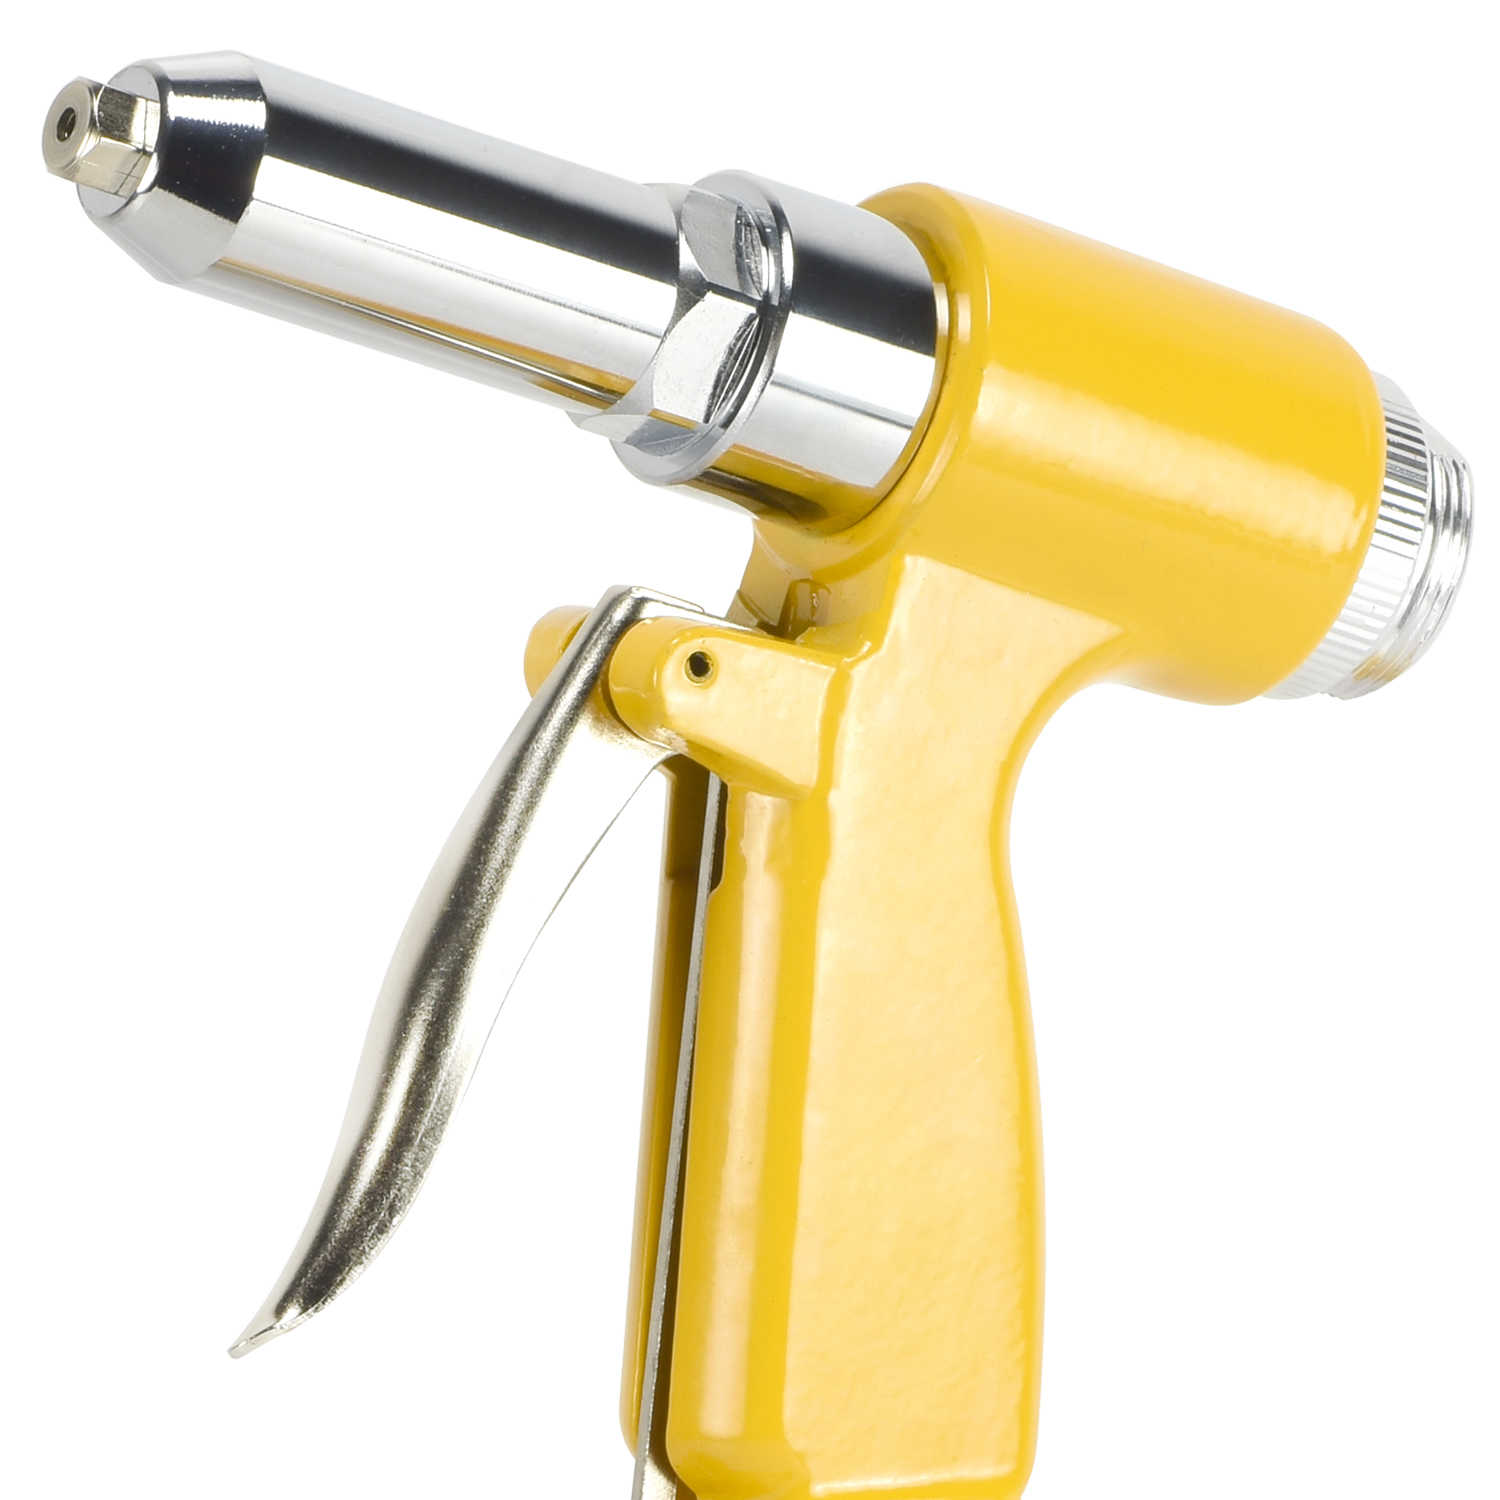 Air Rivet Gun Pop Riveter Riveting Tool With Case